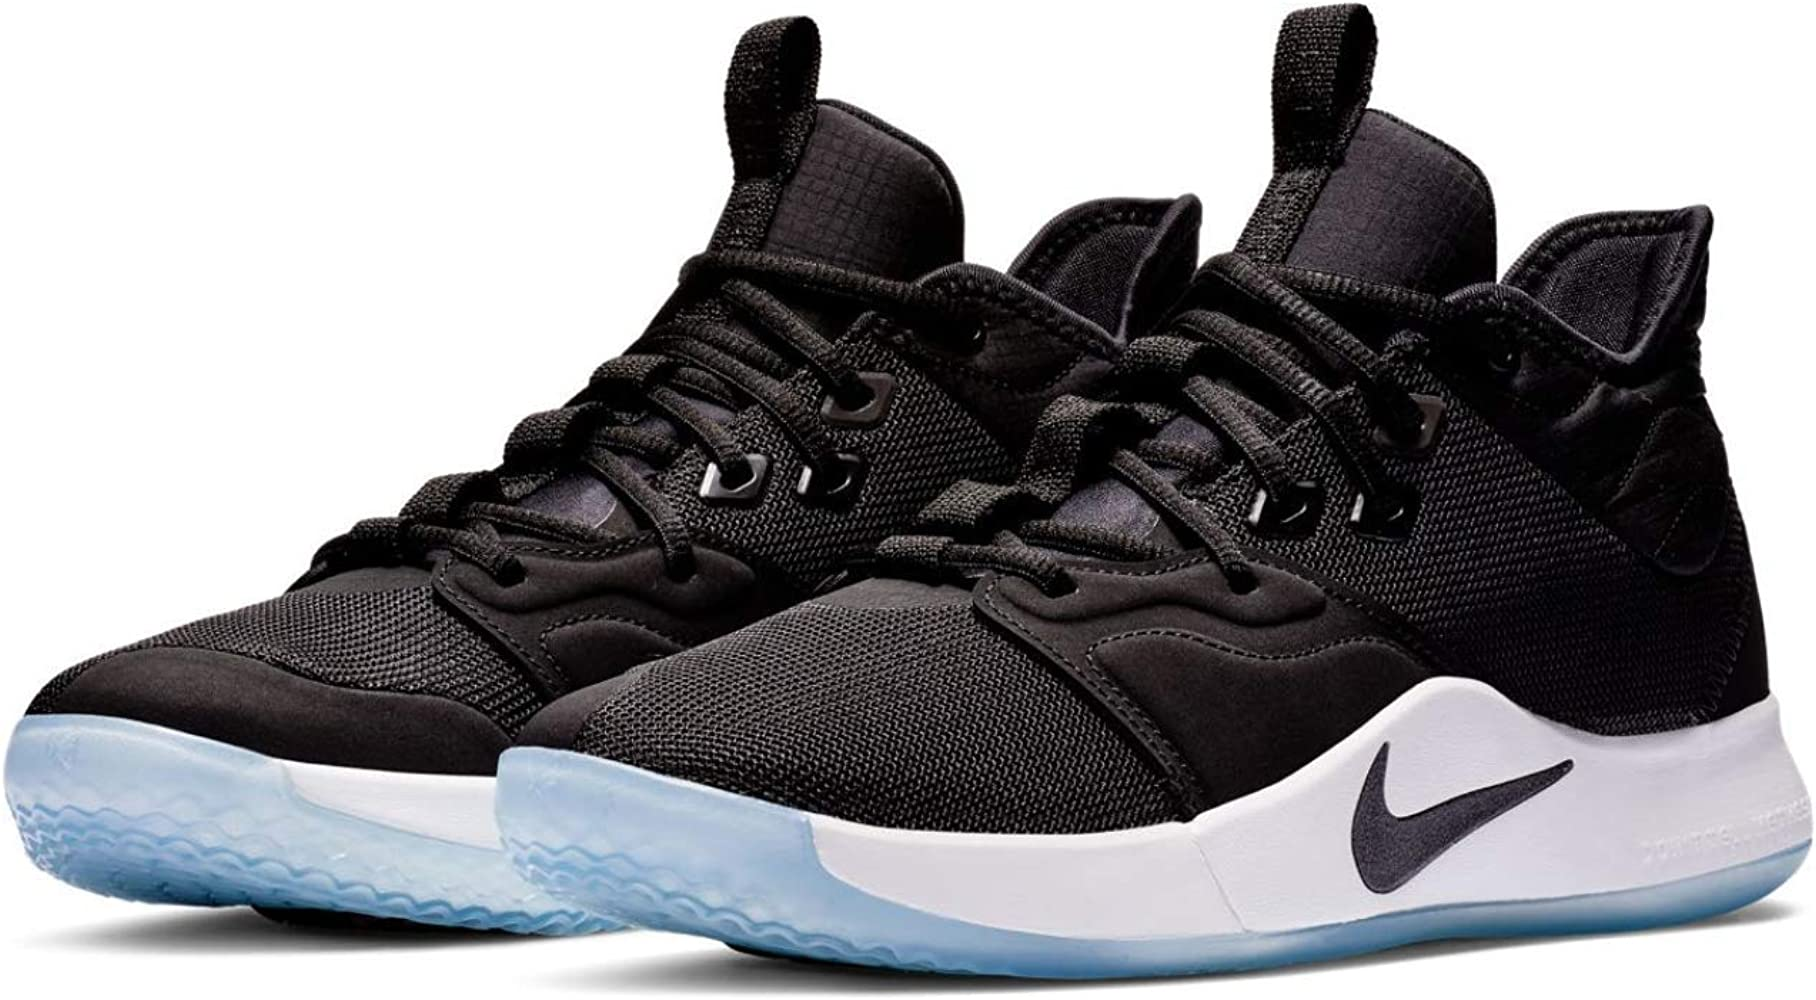 nike basketball pg 3 Kevin Durant shoes